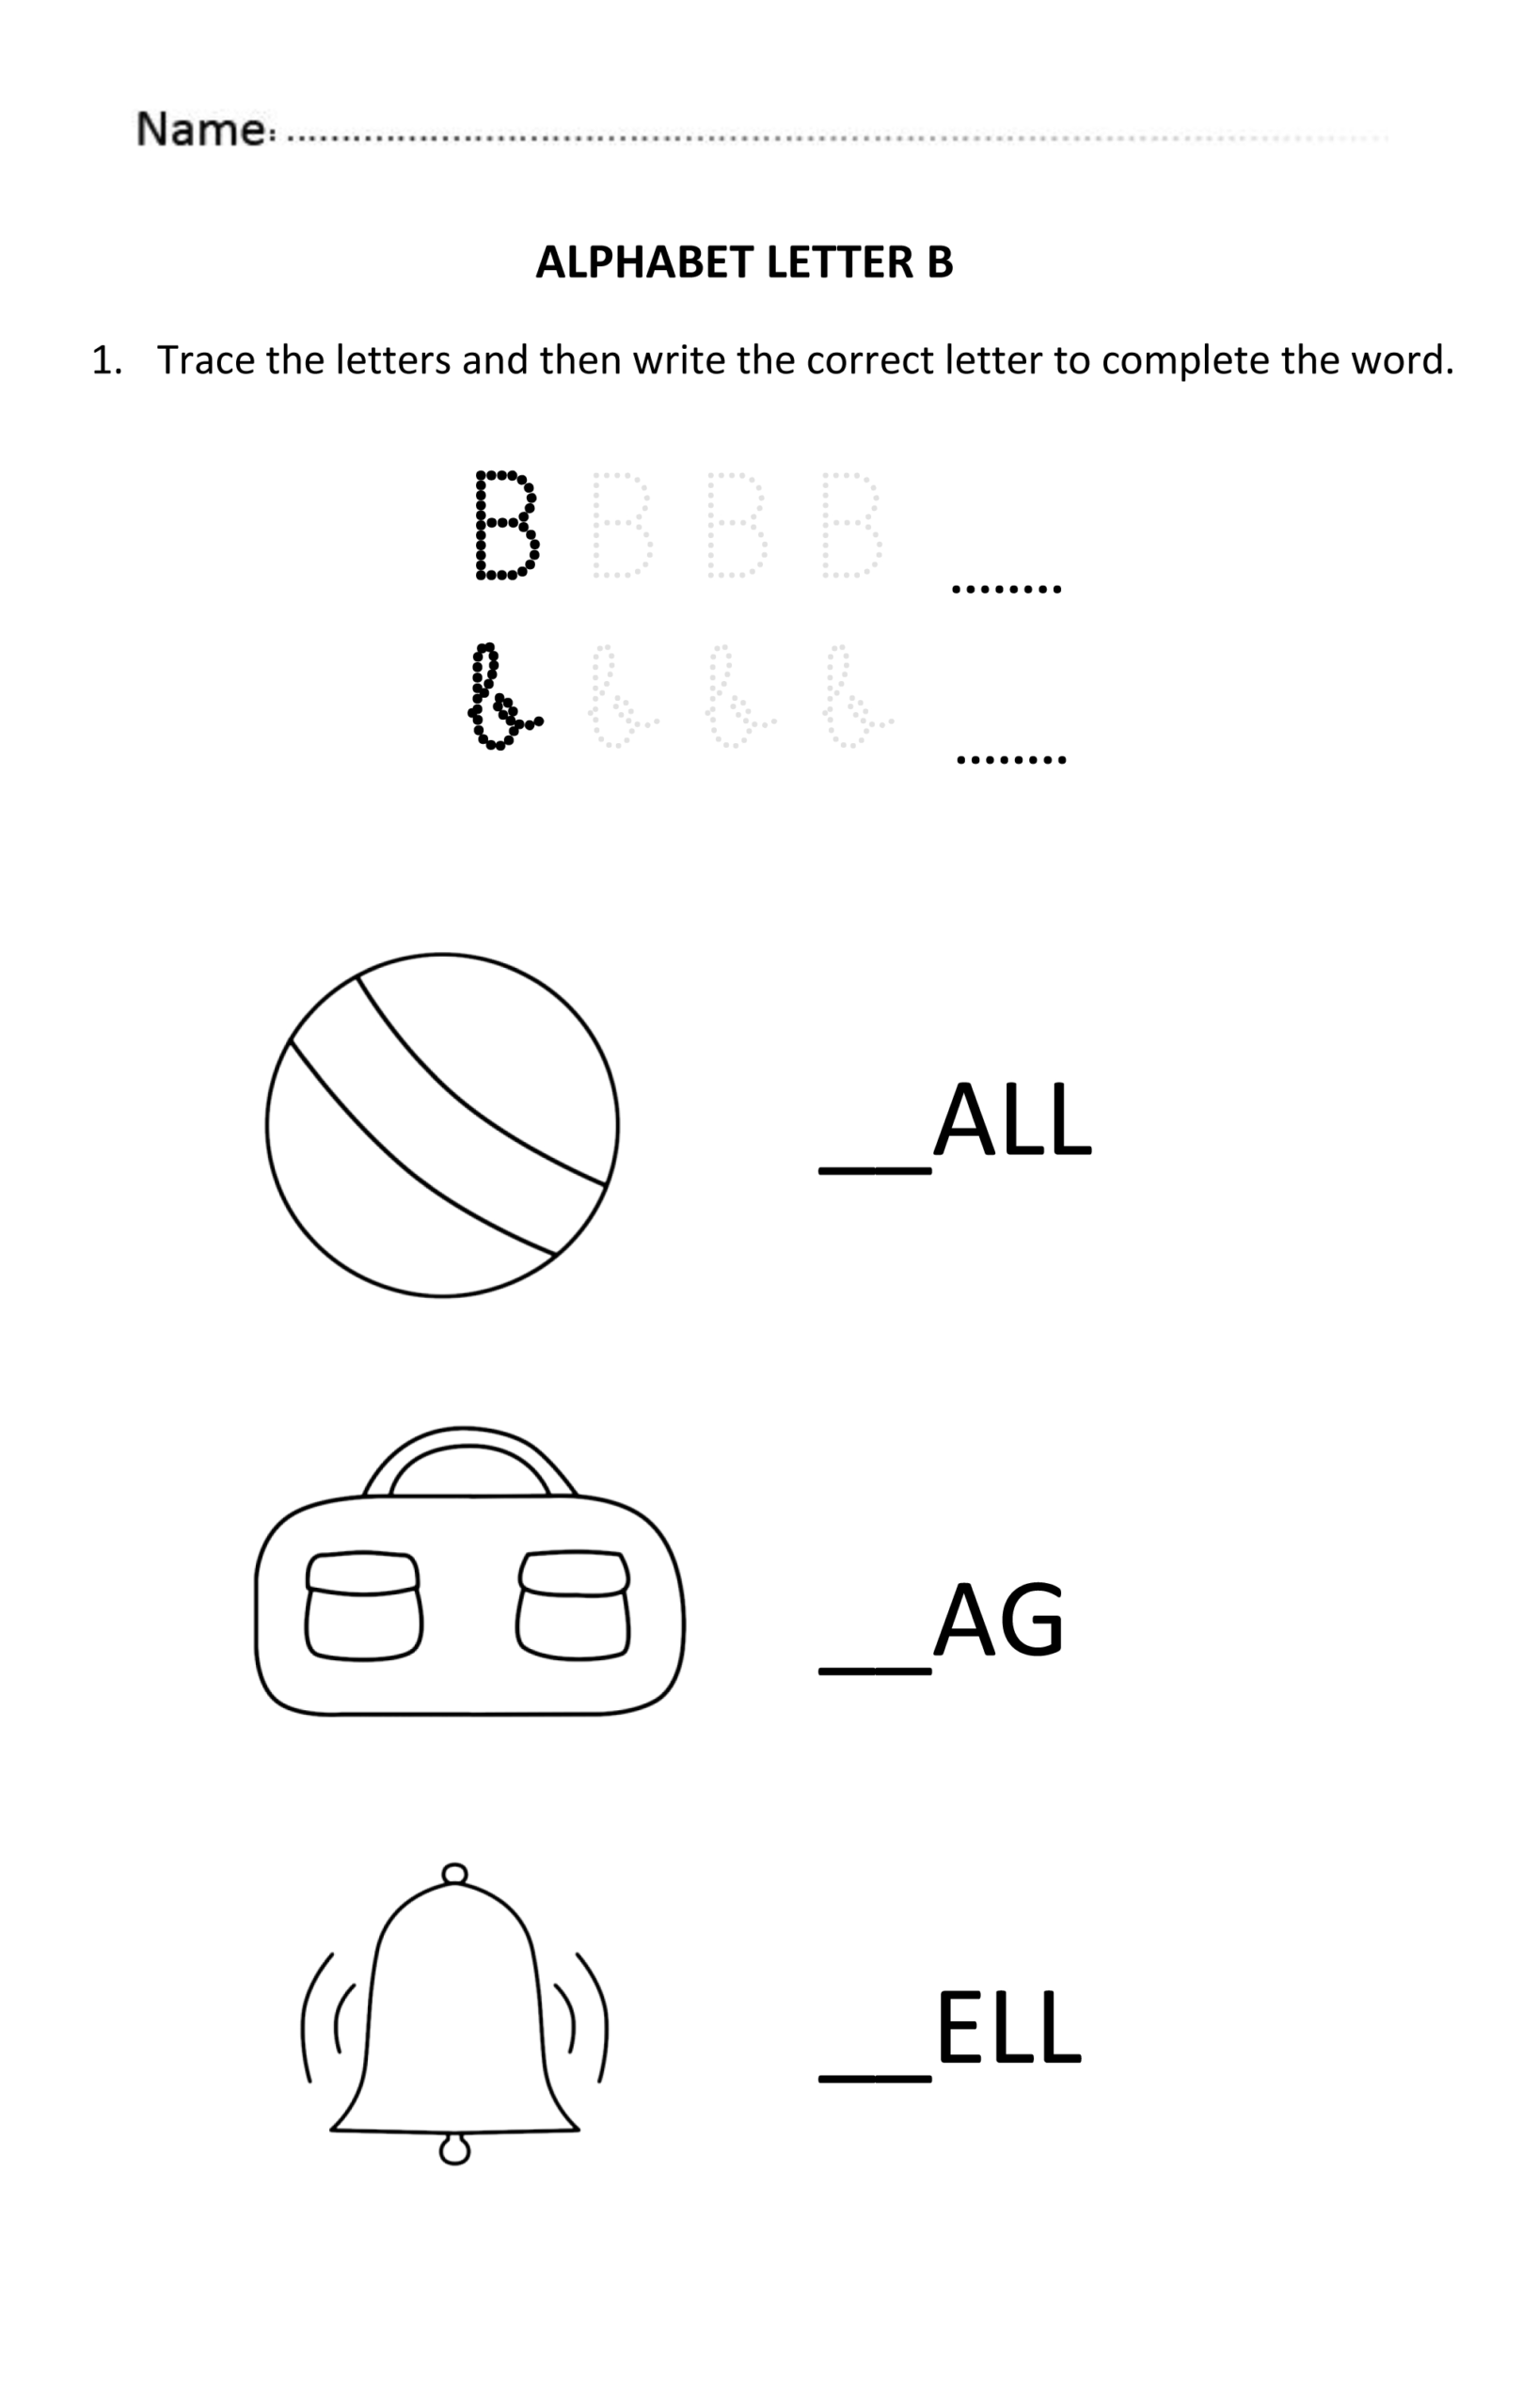 Learning And Writing Letter B For 5 And 6 Year Old Students regarding Letter B Worksheets For 2 Year Olds